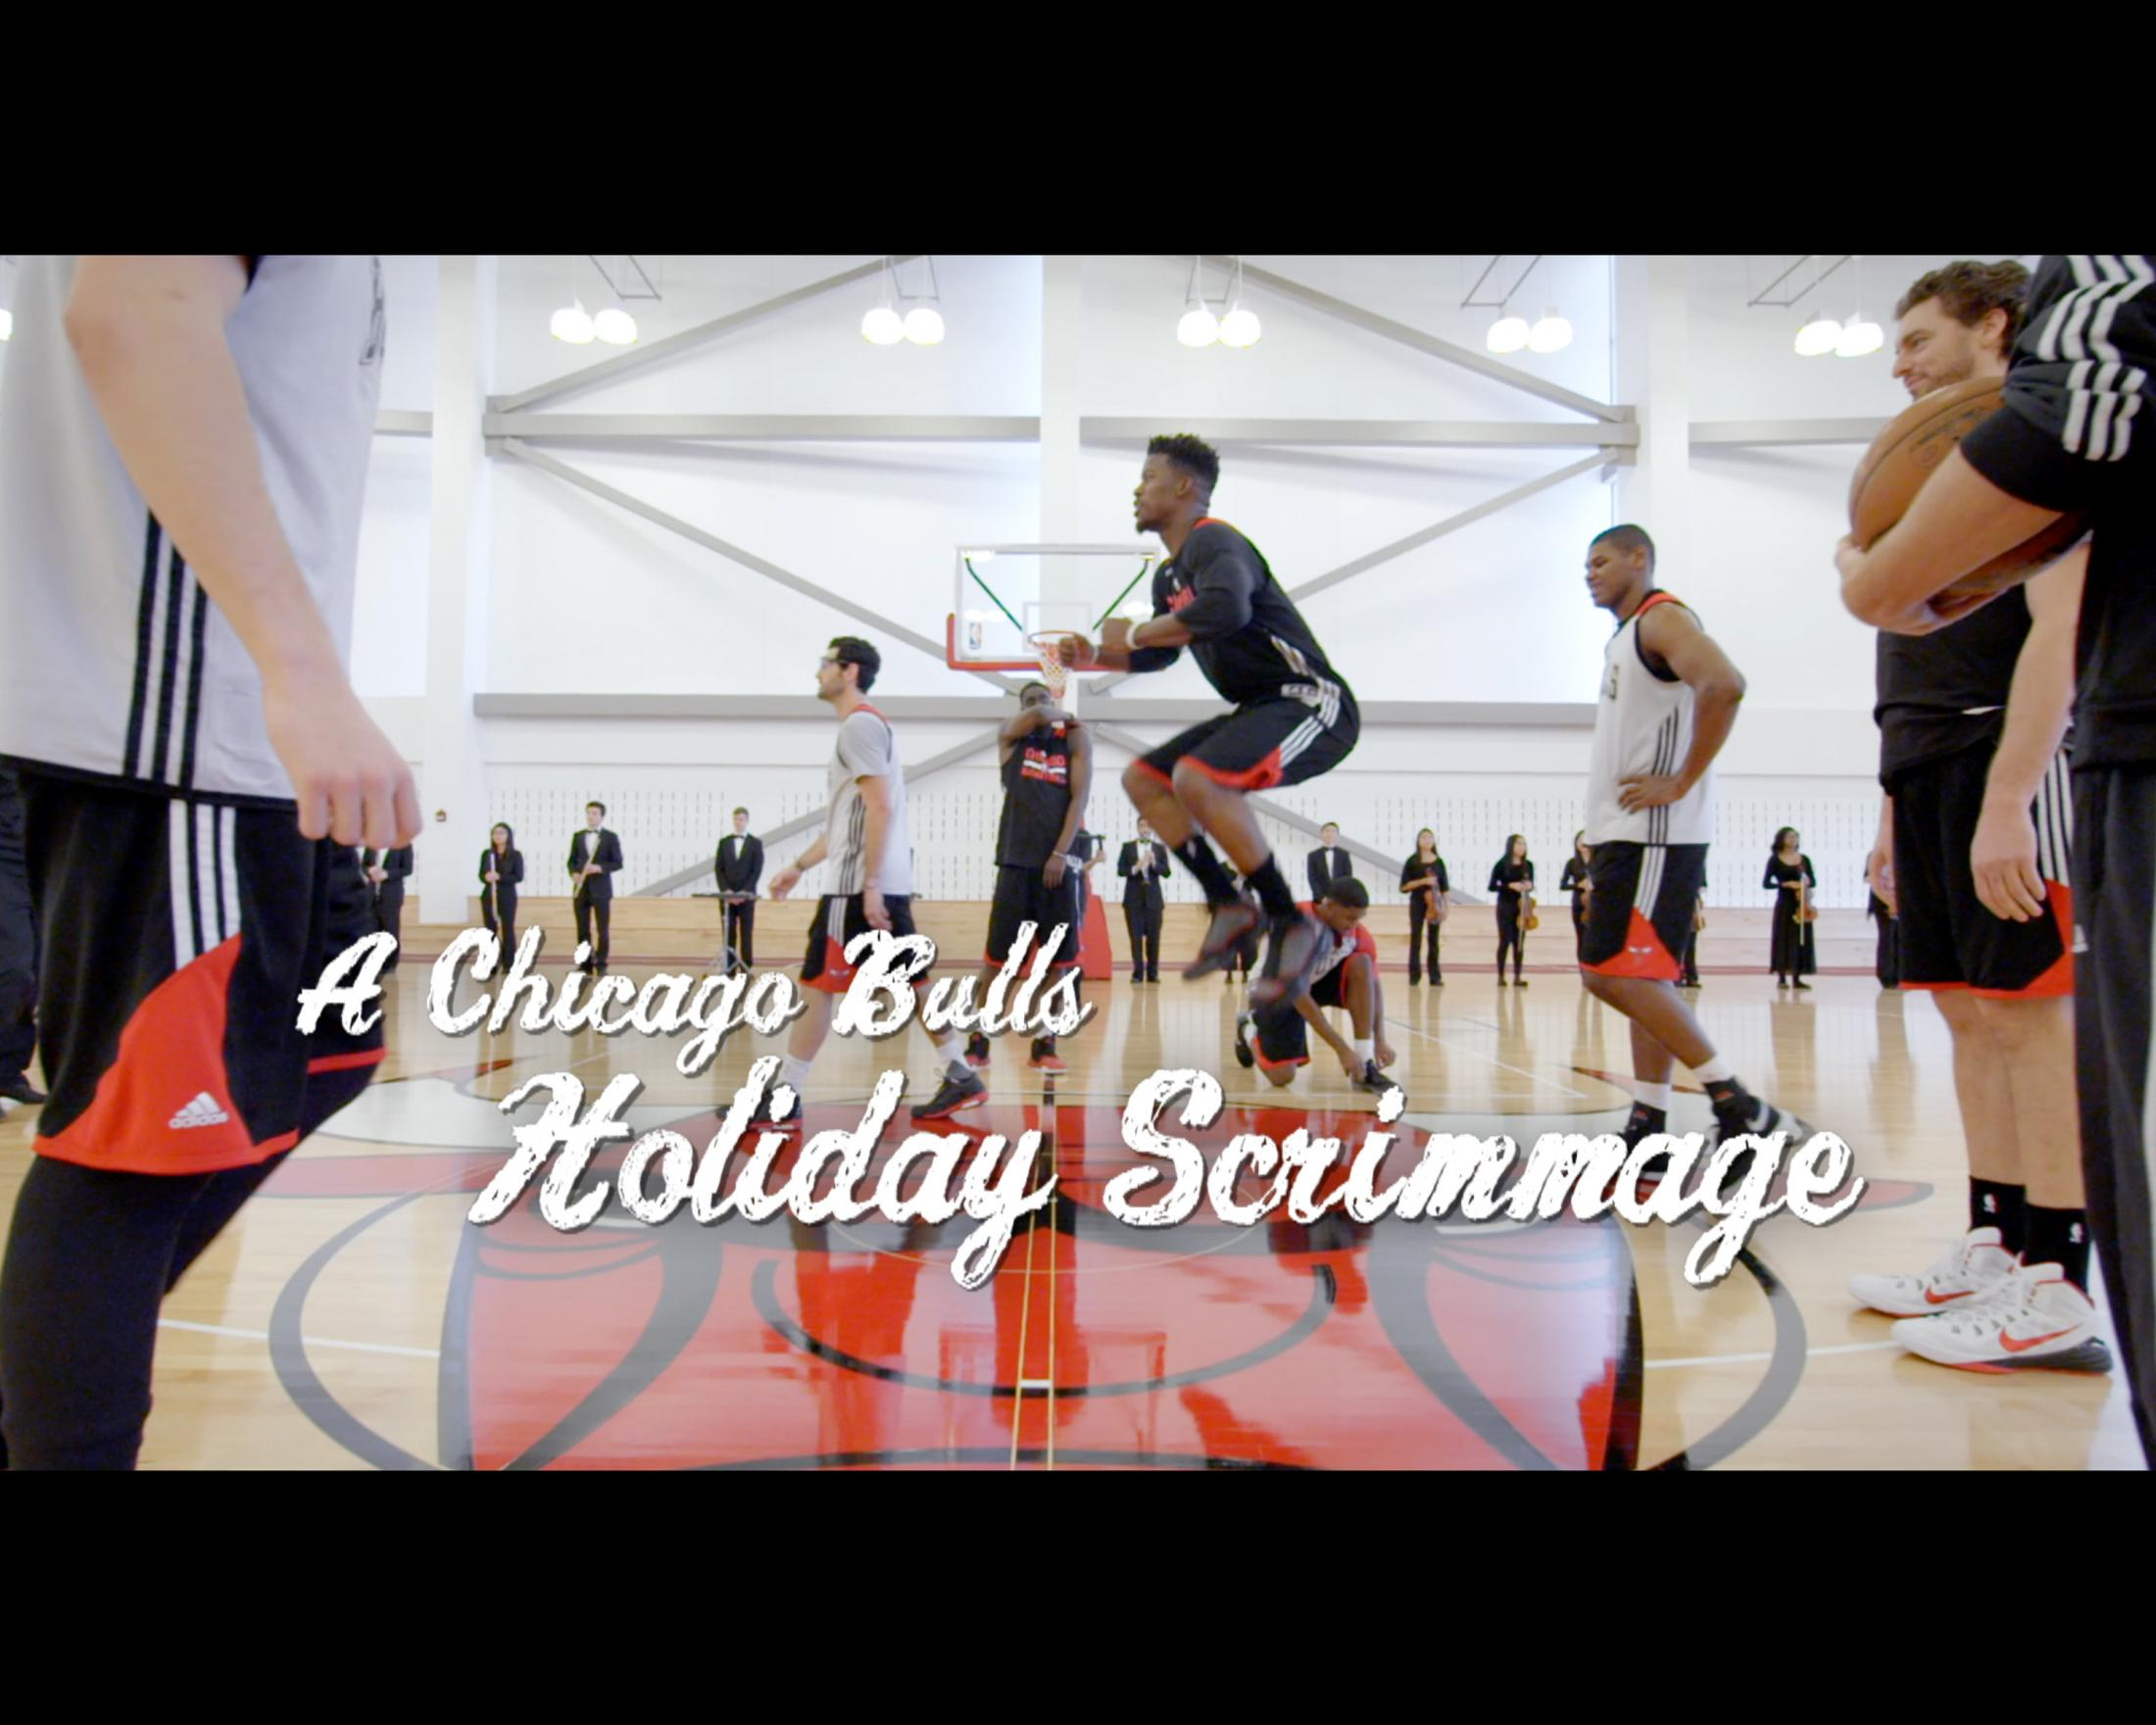 Image Media for A Chicago Bulls Holiday Scrimmage